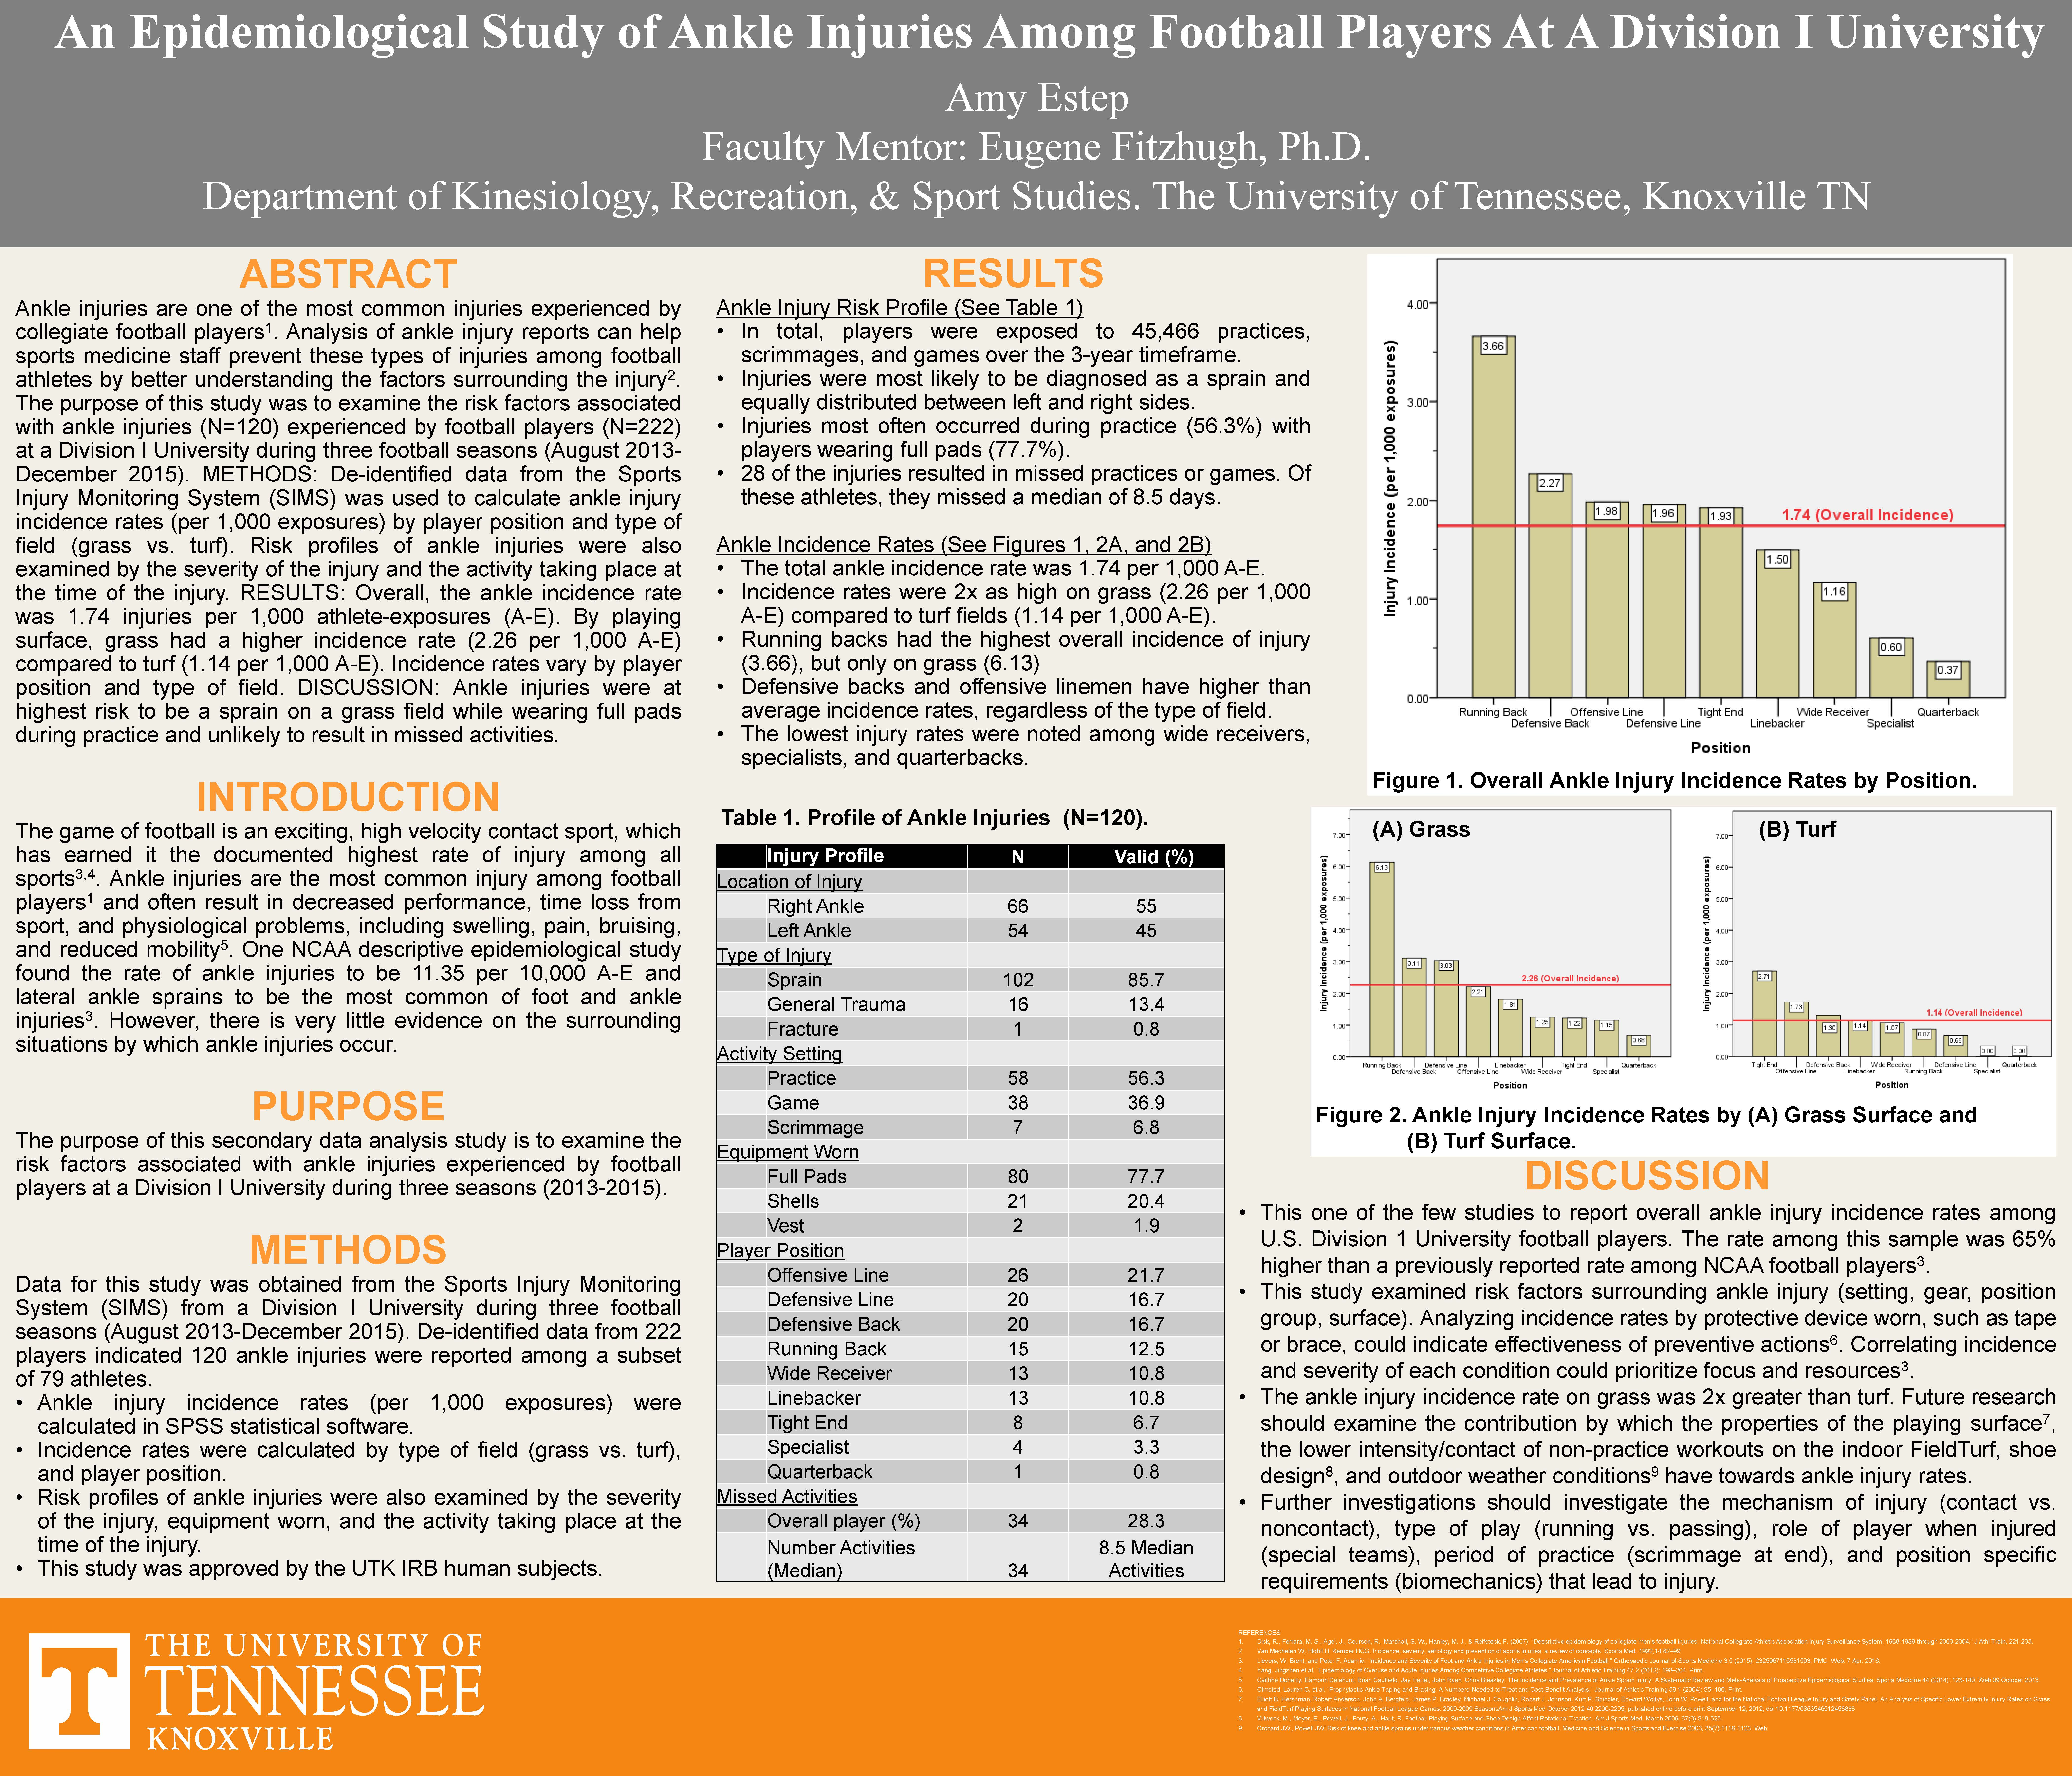 An Epidemiological Study of Ankle Injuries Among Football Players